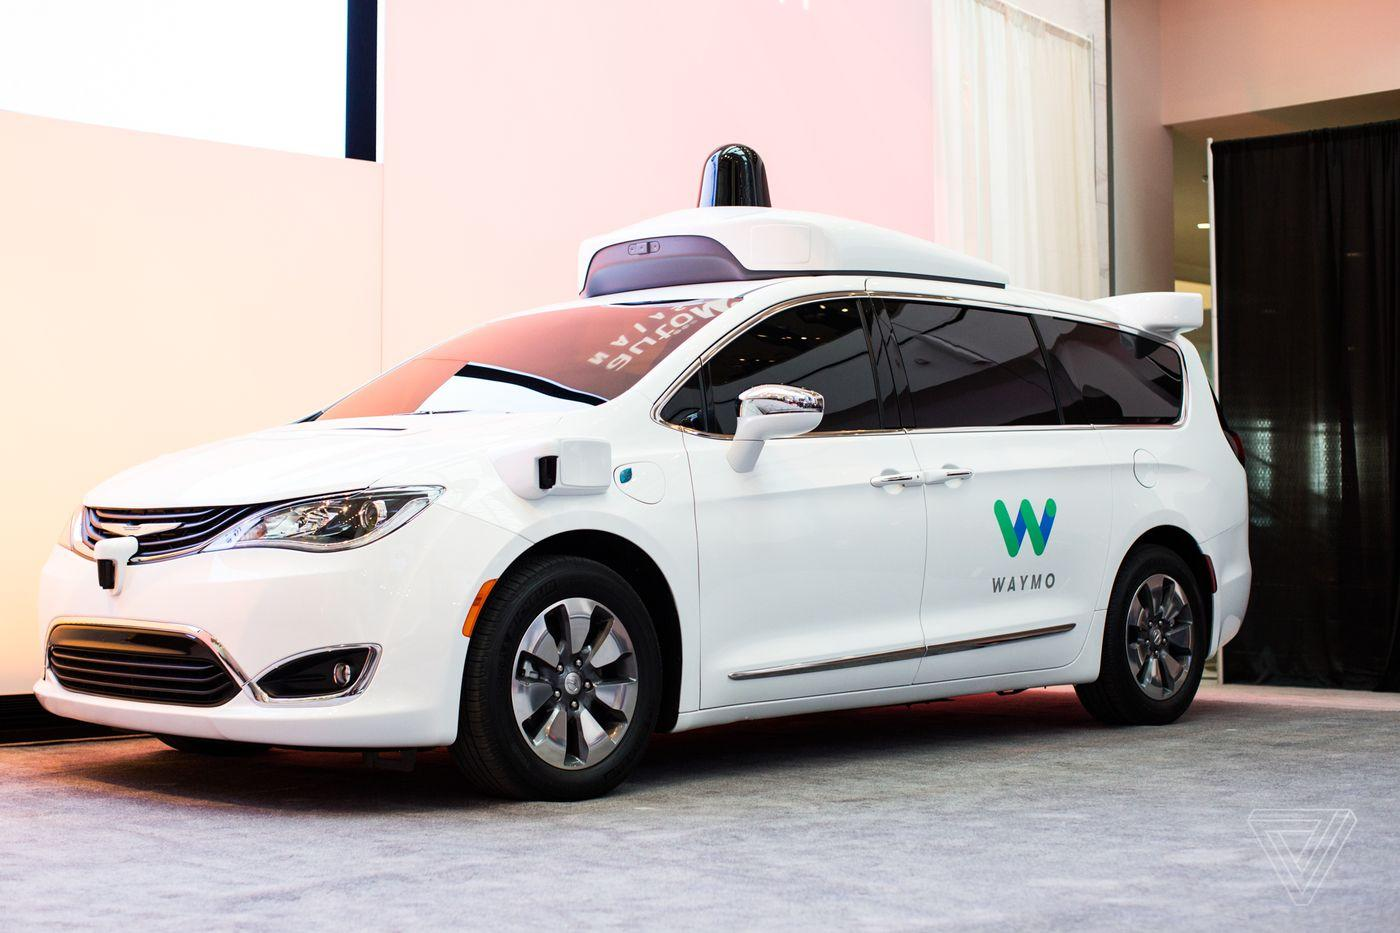 Google takes another step towards launching its own self-driving Uber-killer with new patent